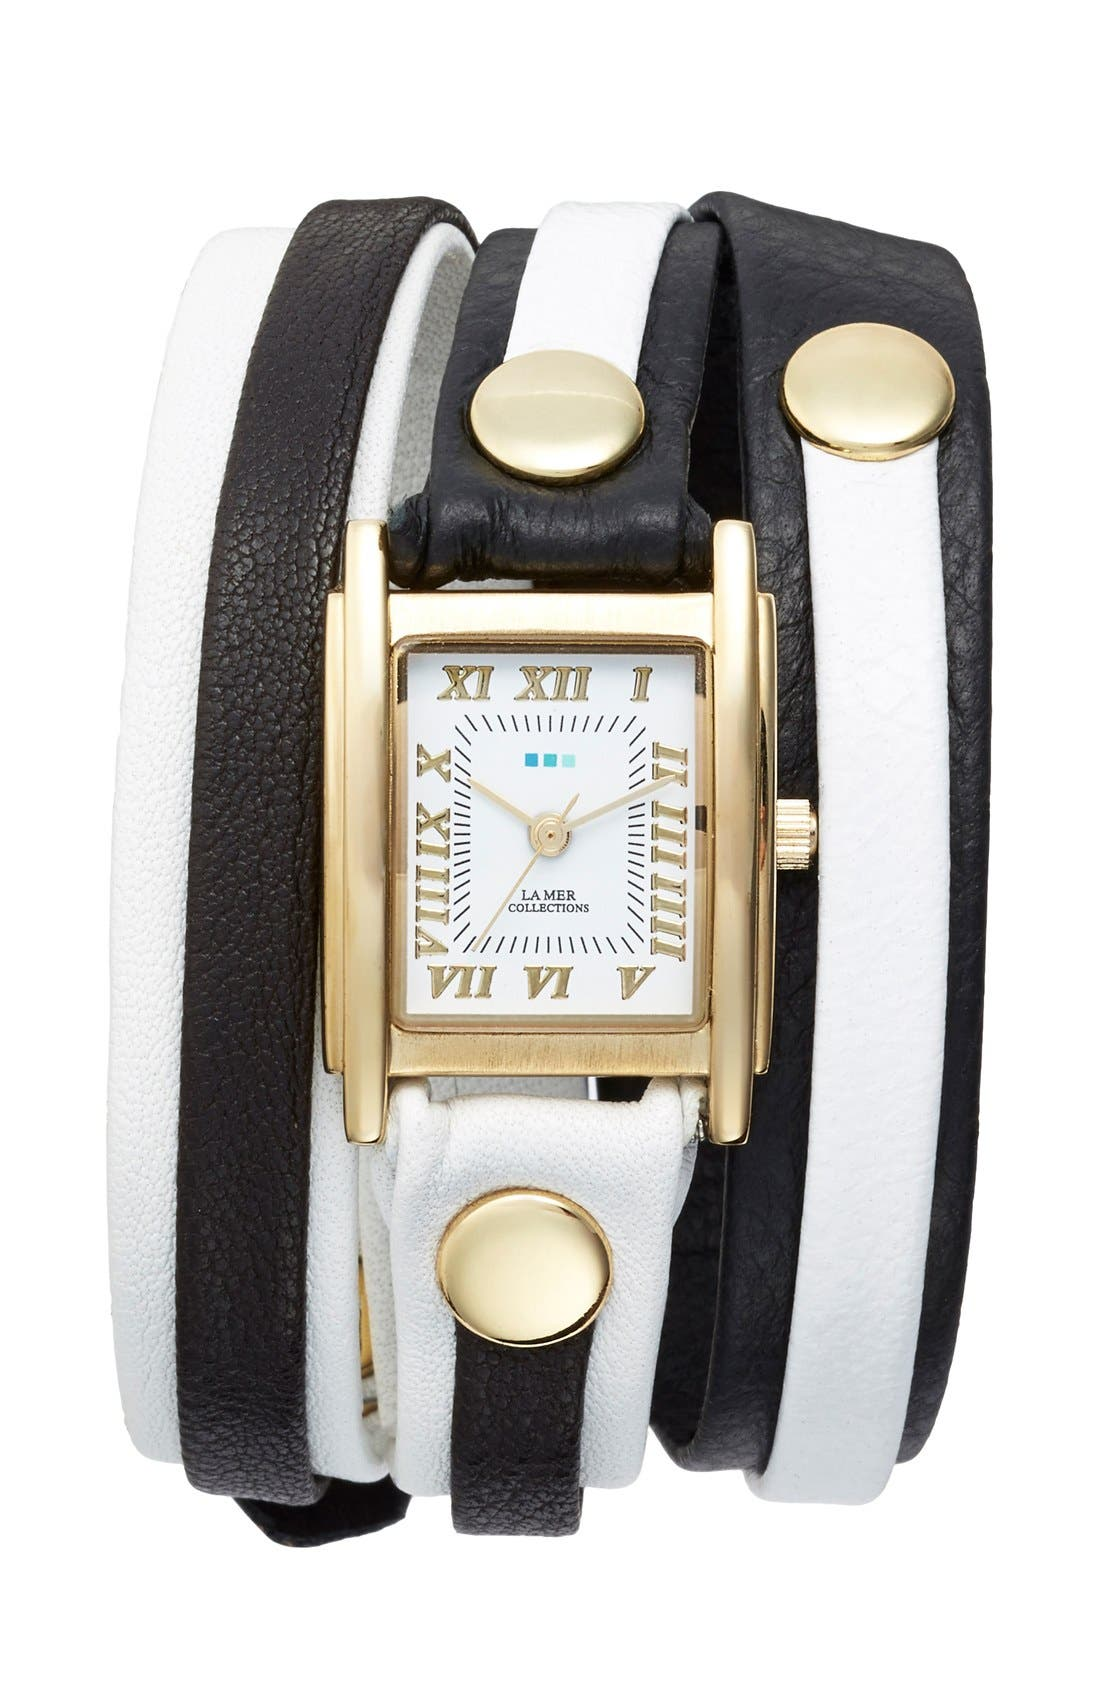 Alternate Image 1 Selected - La Mer Collections 'Mix Up' Leather Wrap Watch